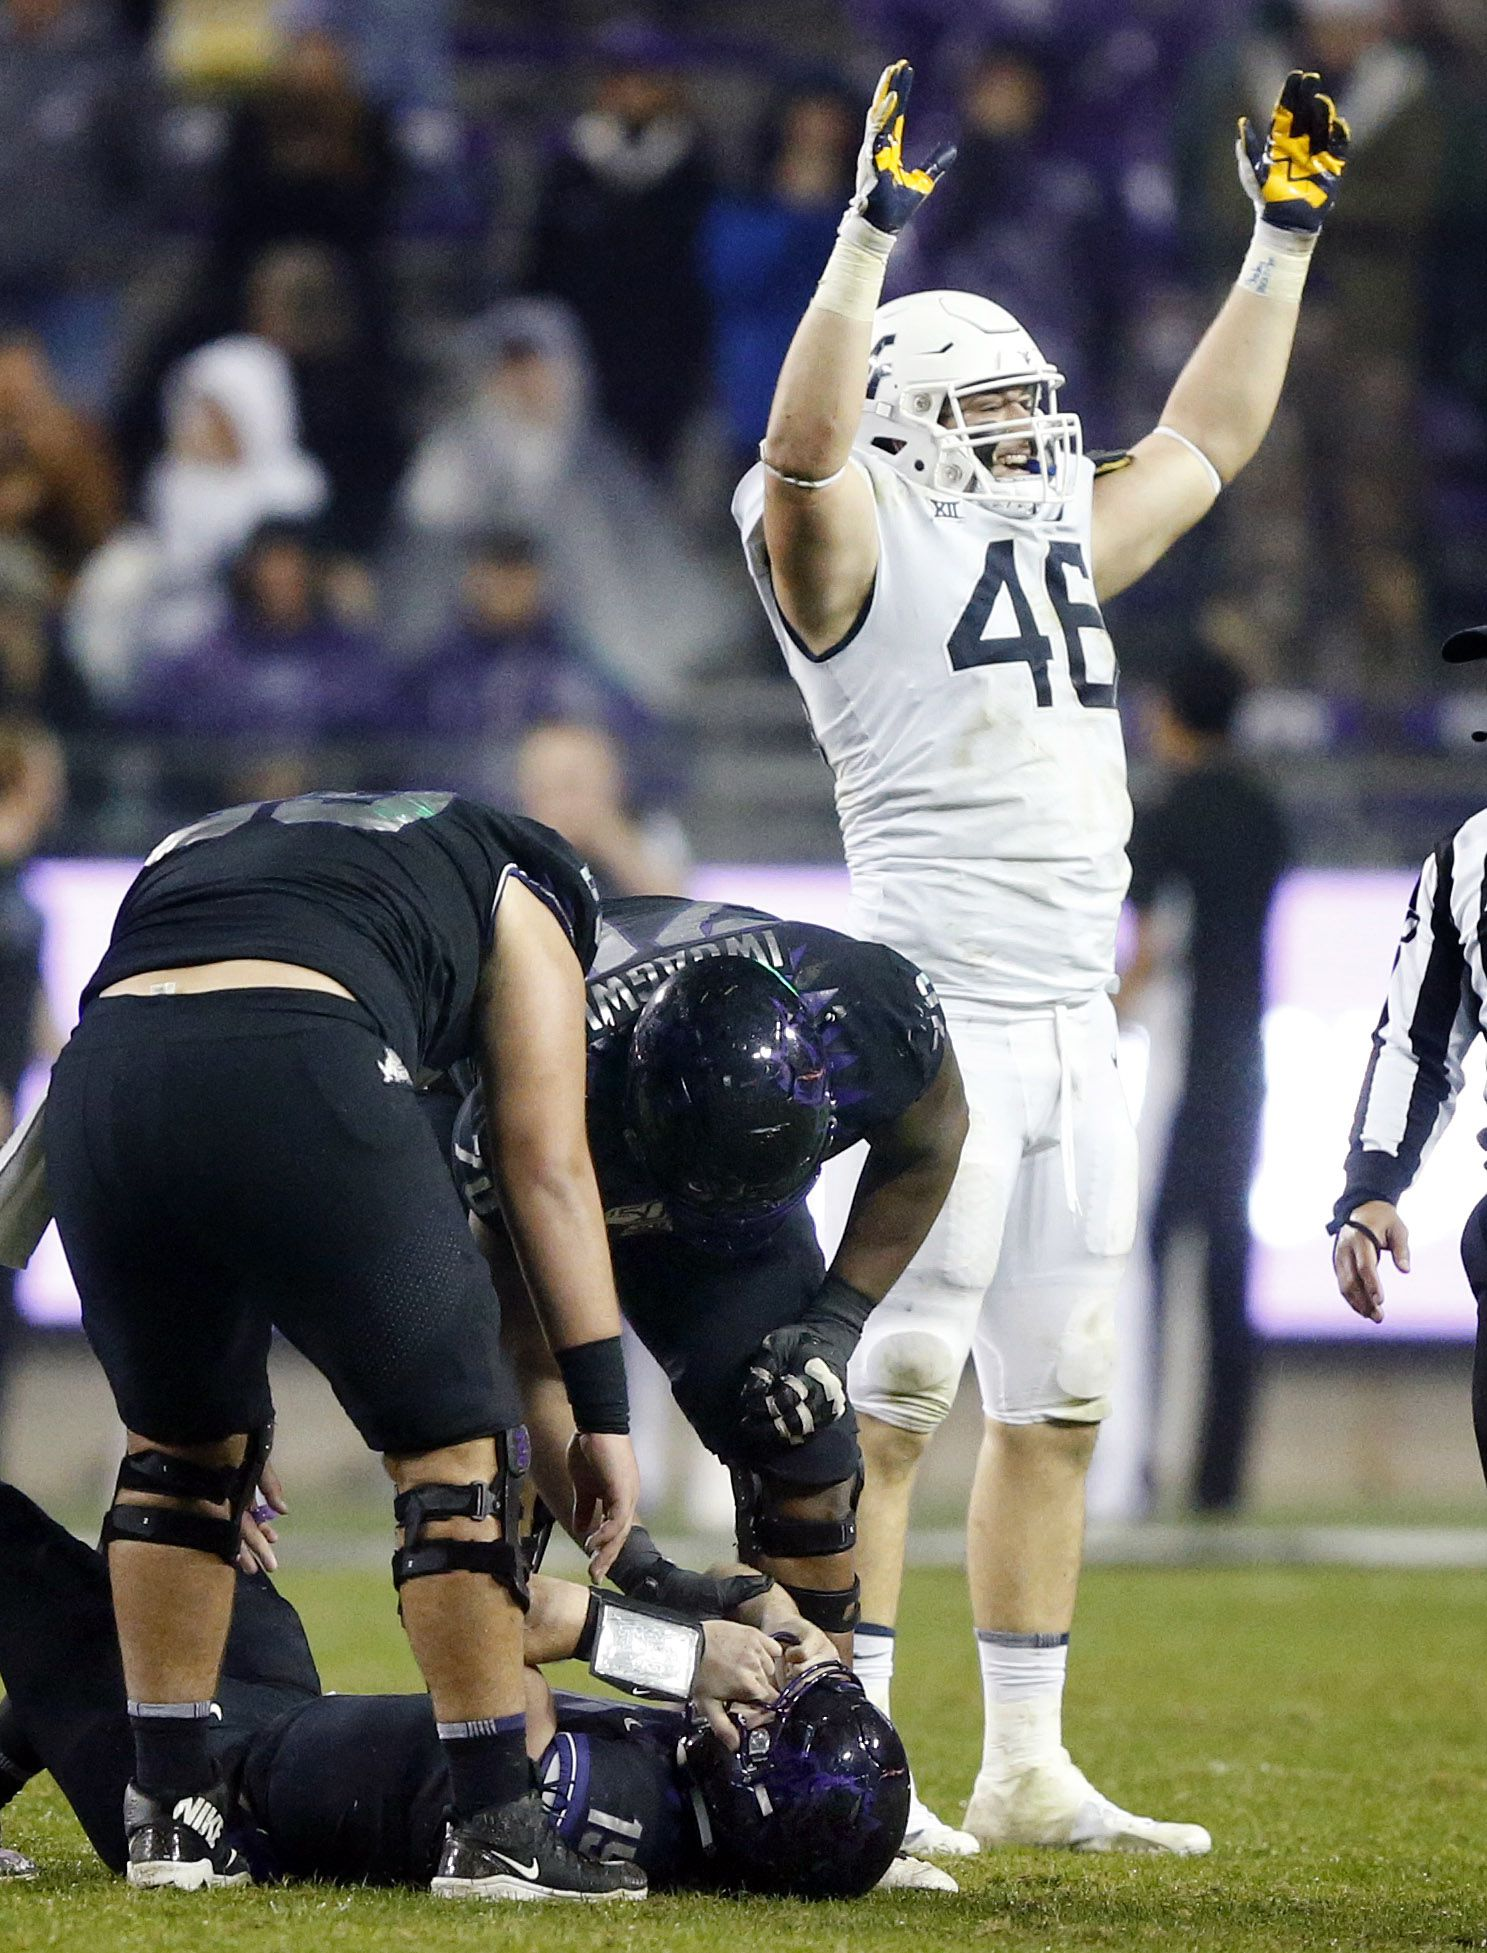 West Virginia Mountaineers defensive lineman Reese Donahue (46) celebrates their win over TCU Horned Frogs quarterback Max Duggan (15, on gorund) at Amon G. Carter Stadium in Fort Worth, Friday, November 29, 2019. Donahue combined for the tackle of Duggan on the last TCU play. TCU lost, 20-17.